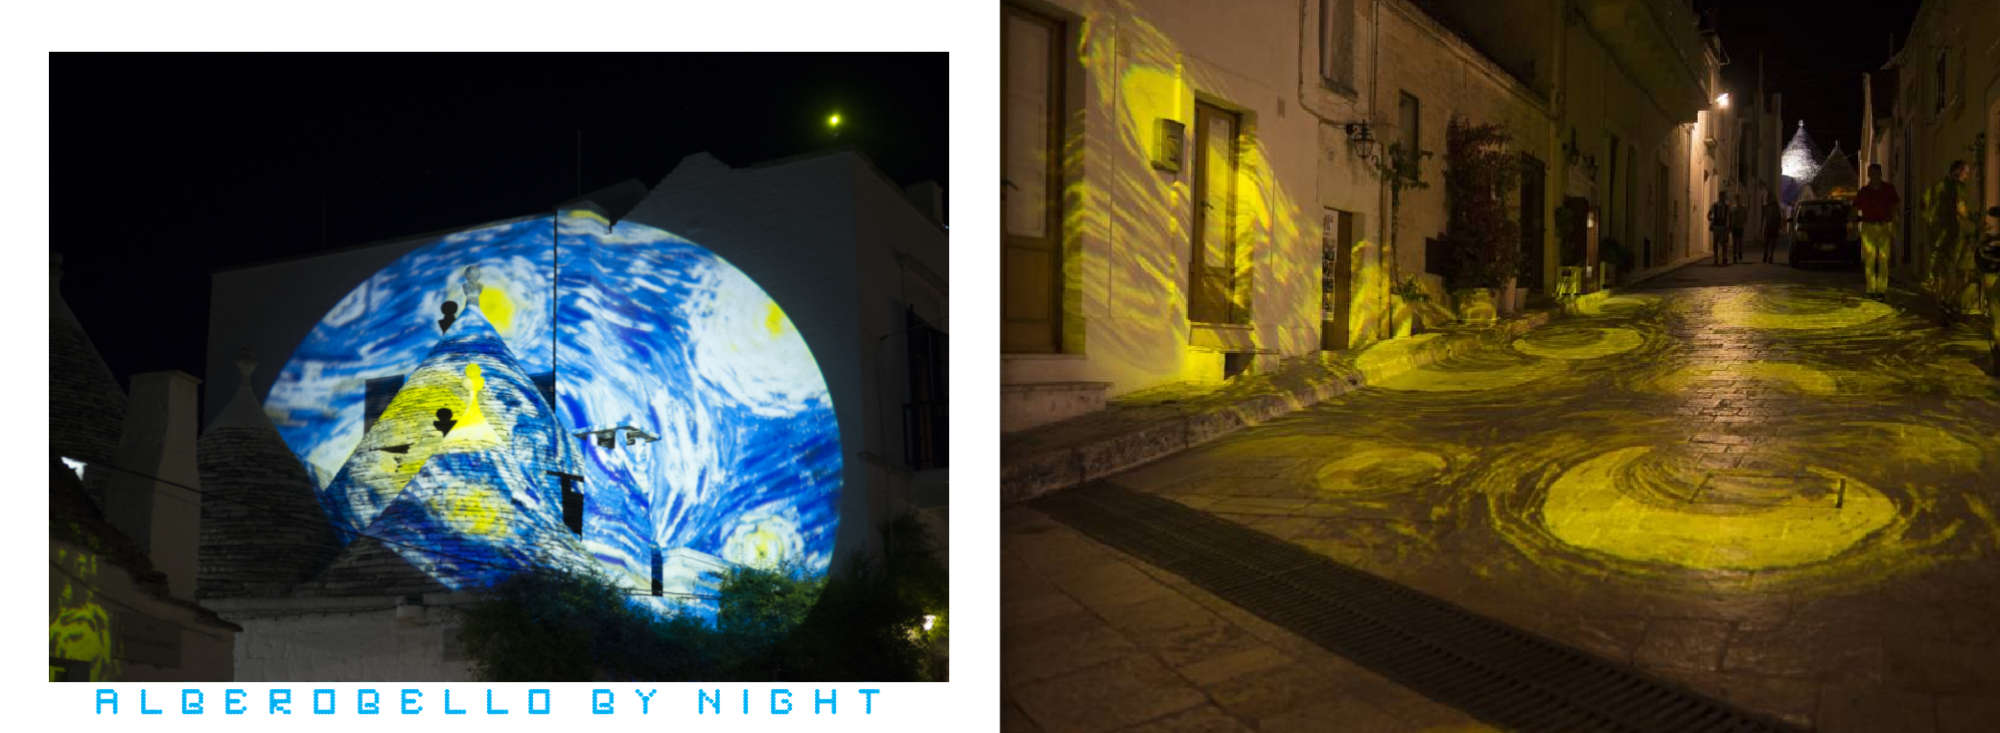 Puglia Album - Pages 46-47: The shifting lights of Alberobello